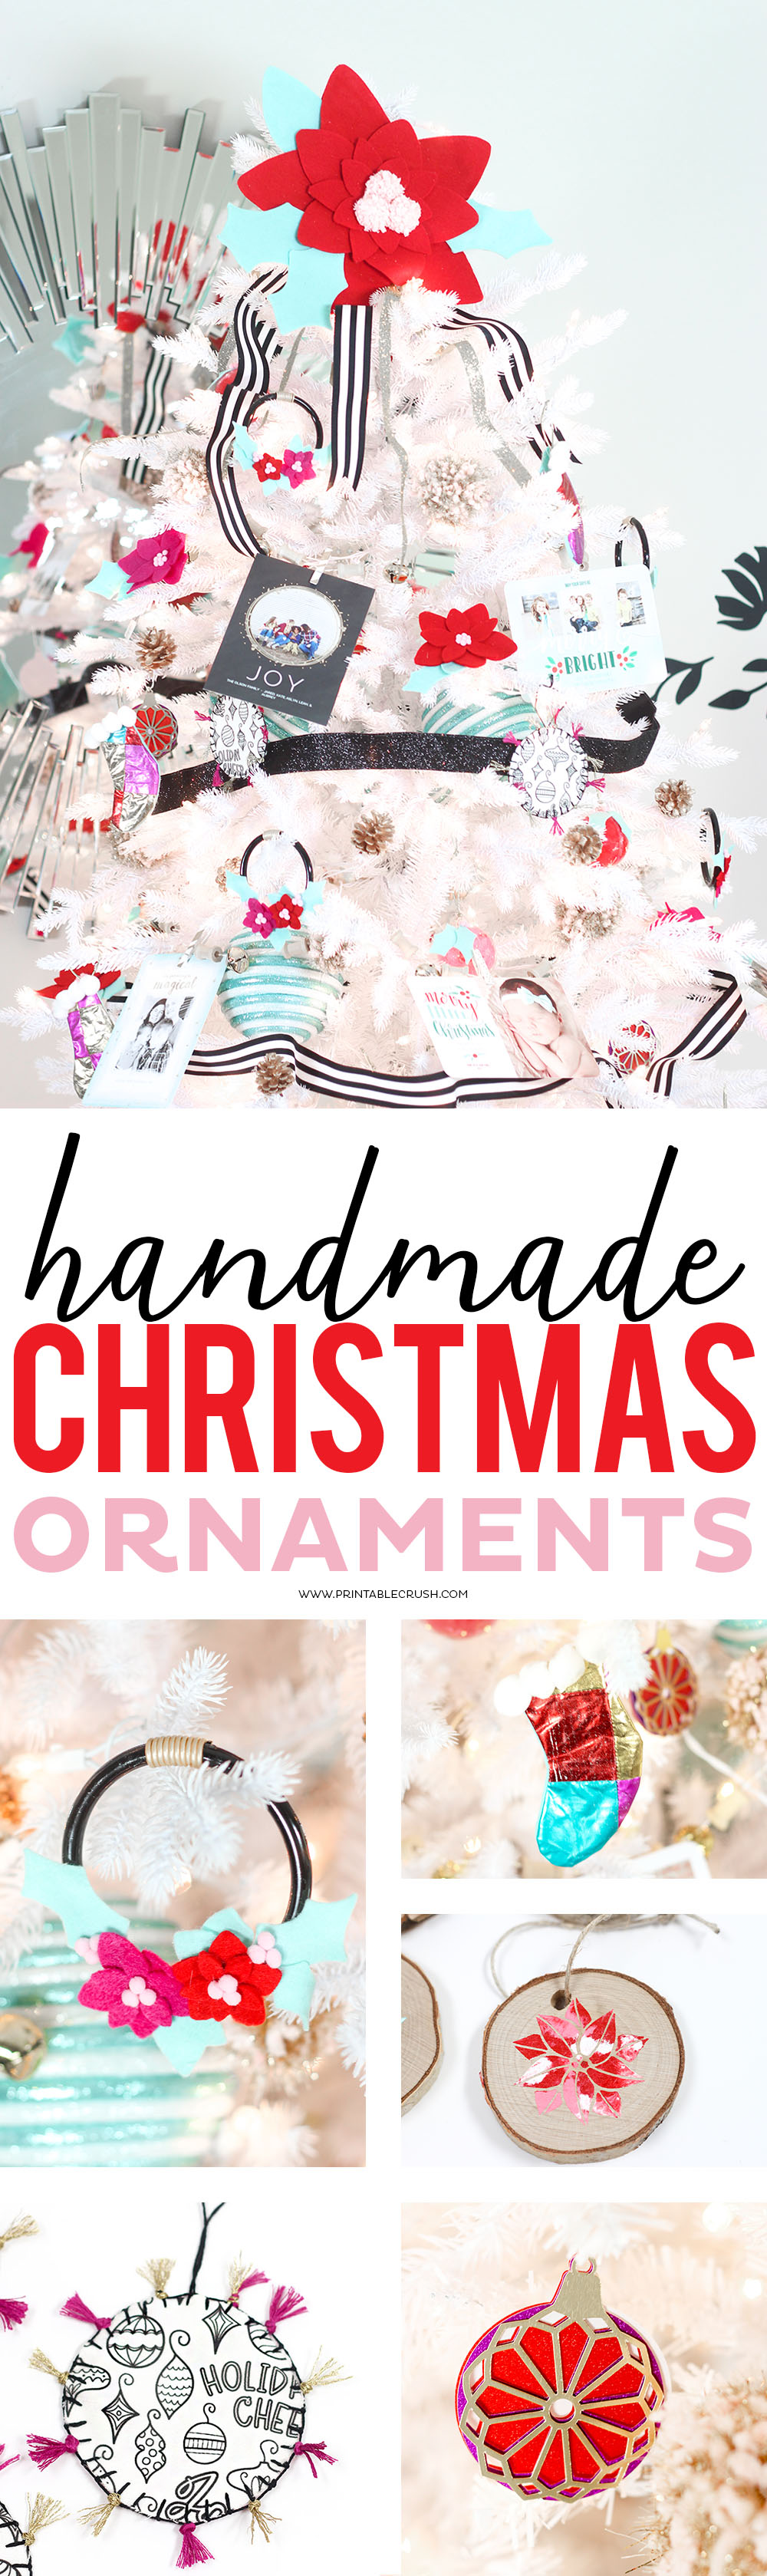 These Handmade Christmas Ornaments are perfect for anyone who is looking to get crafty and make their own ornaments this year! via @printablecrush